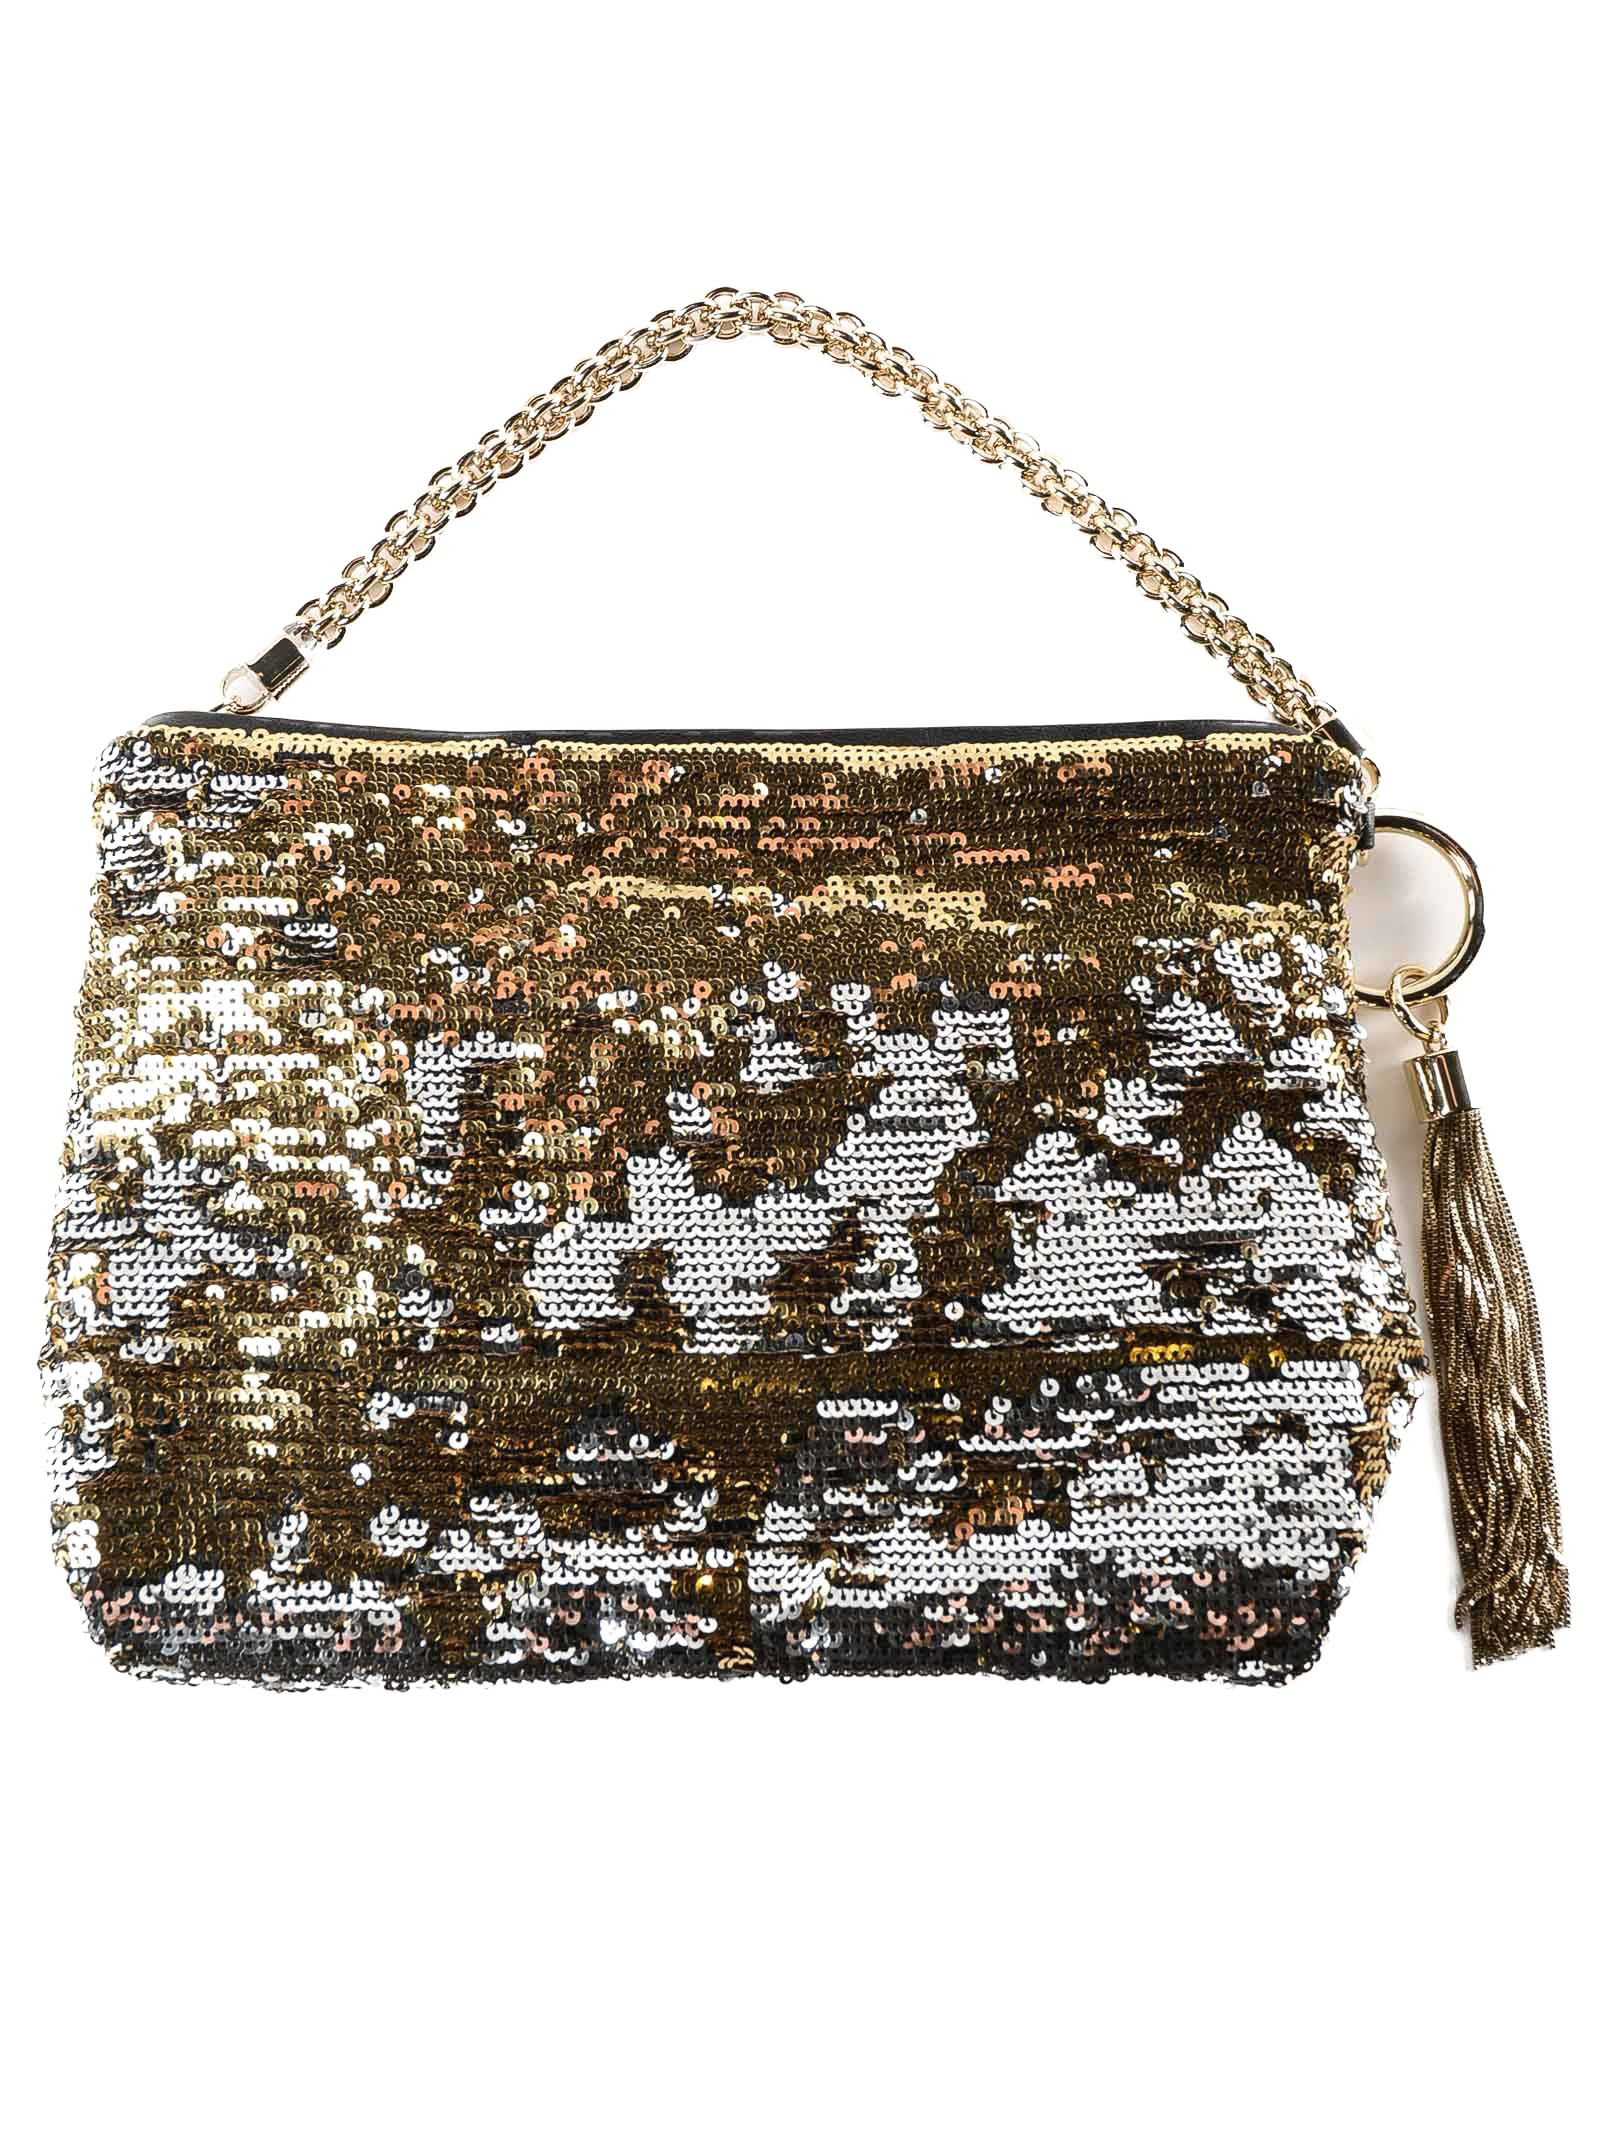 Jimmy Choo Callie Sequin Clutch